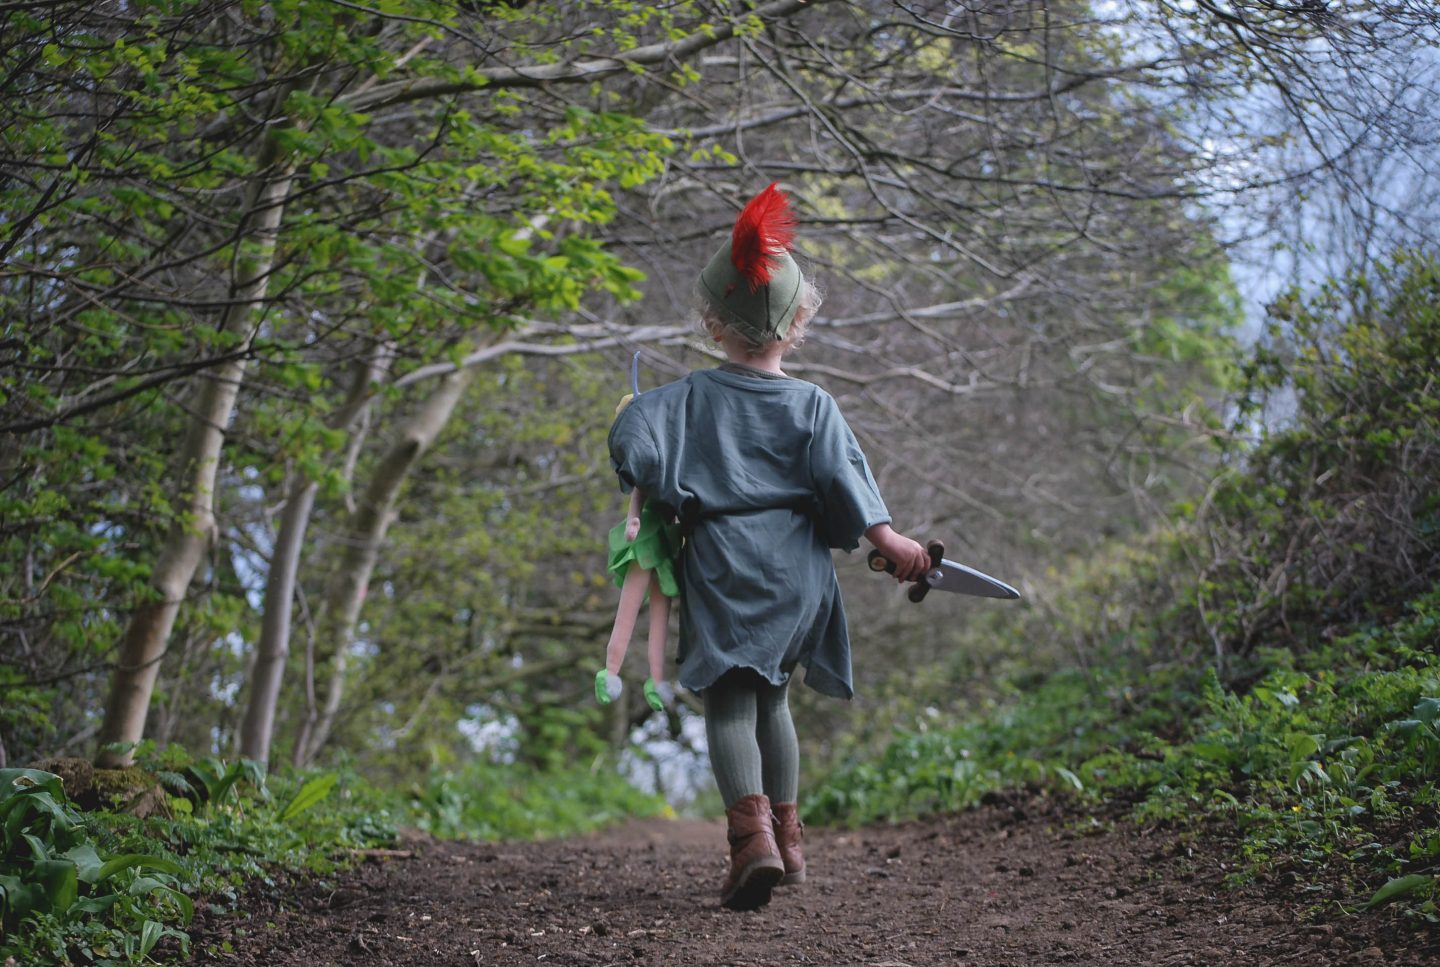 My cute daughter running through the woods dressed as Disney's Peter Pan